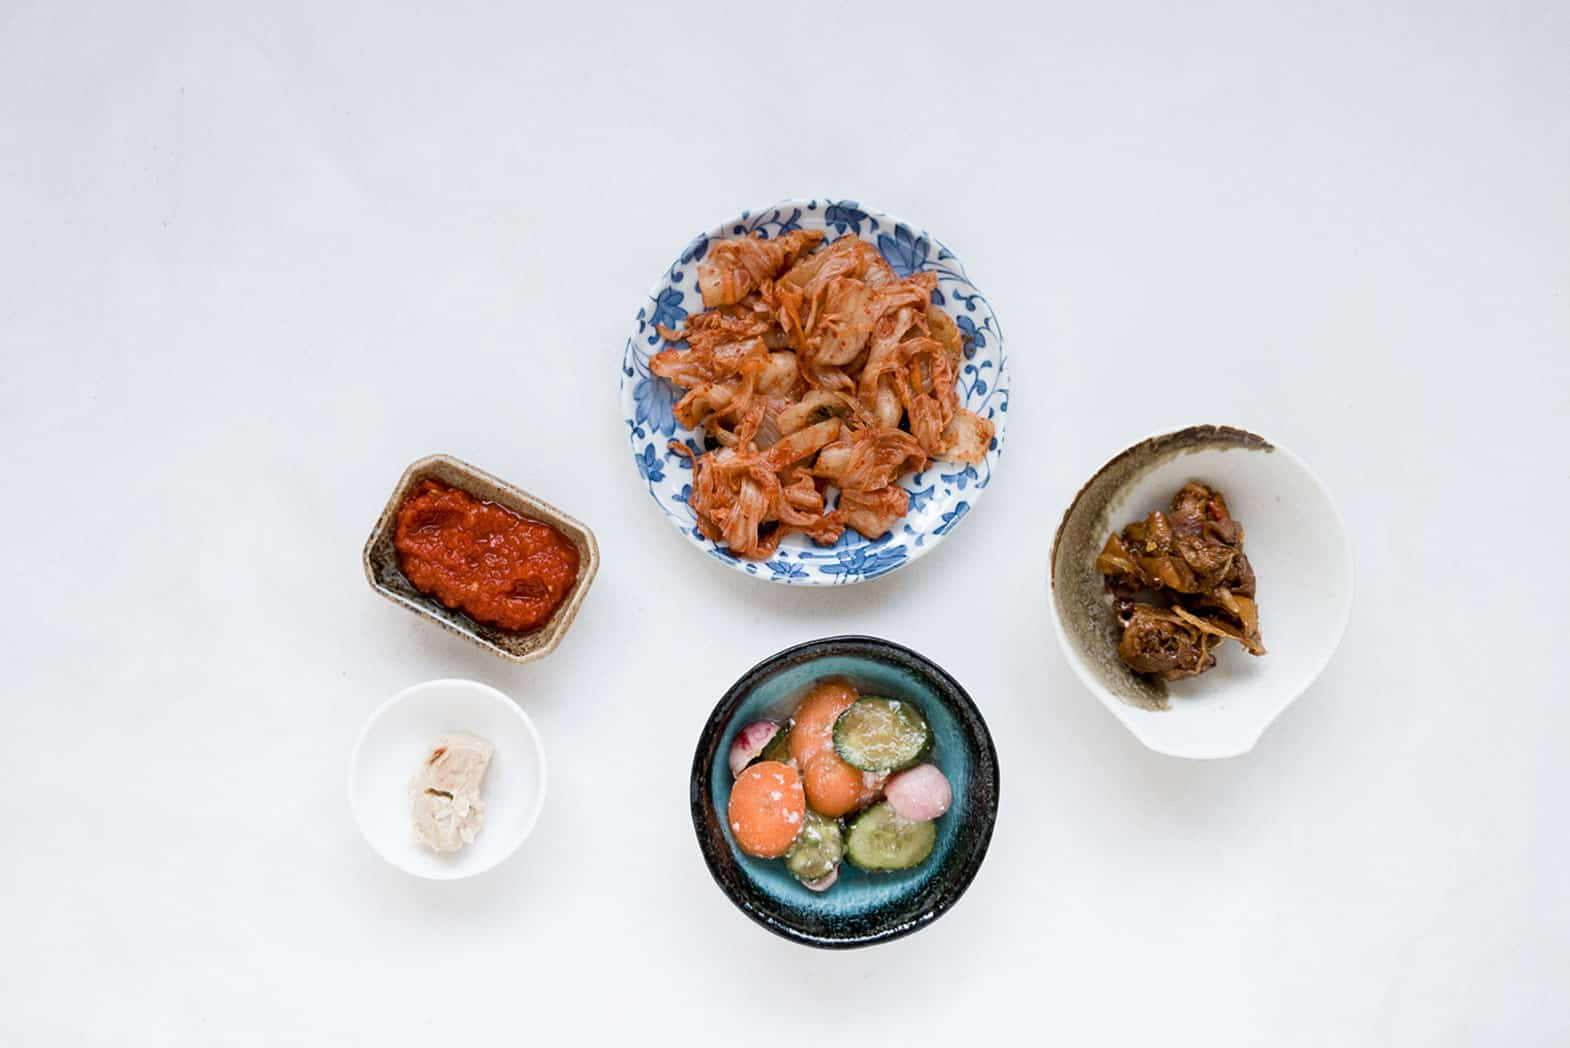 A grey background with bowls of kimchi and fermented food